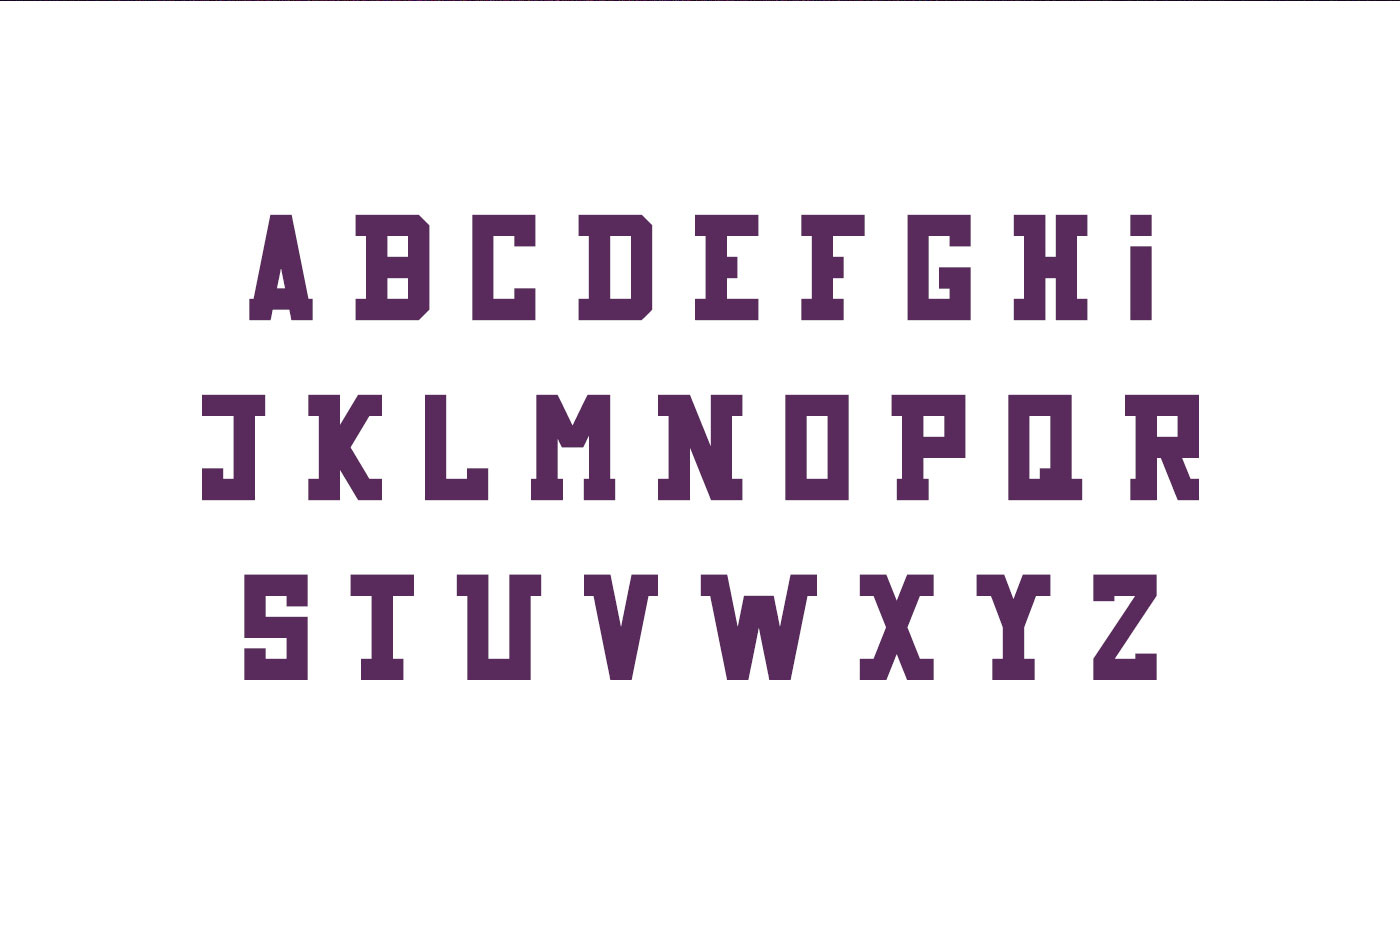 Game Over typeface example image 2